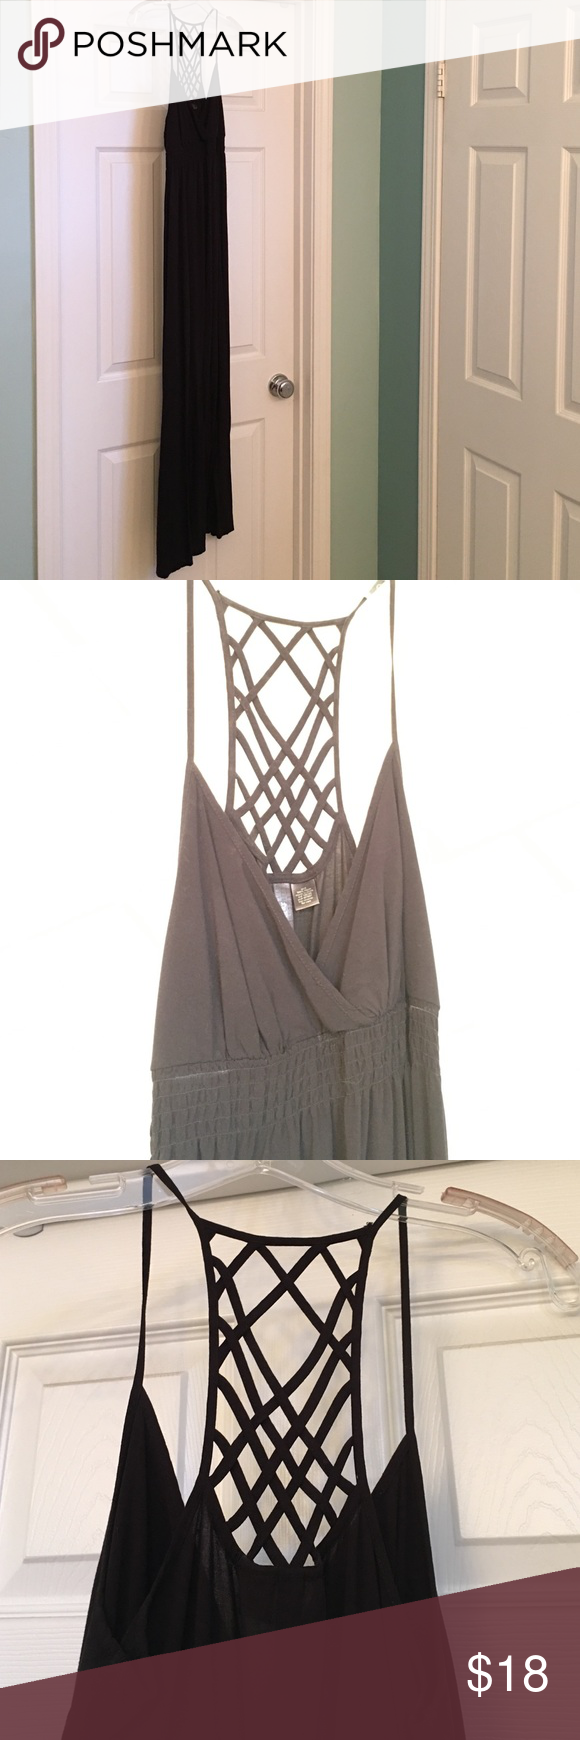 Black Maxi Dress Black maxi dress with empire waist and lattice back detail.  Lightweight and perfect for summer nights.  Like new.  From clean, smoke free home. Full Tilt Dresses Maxi